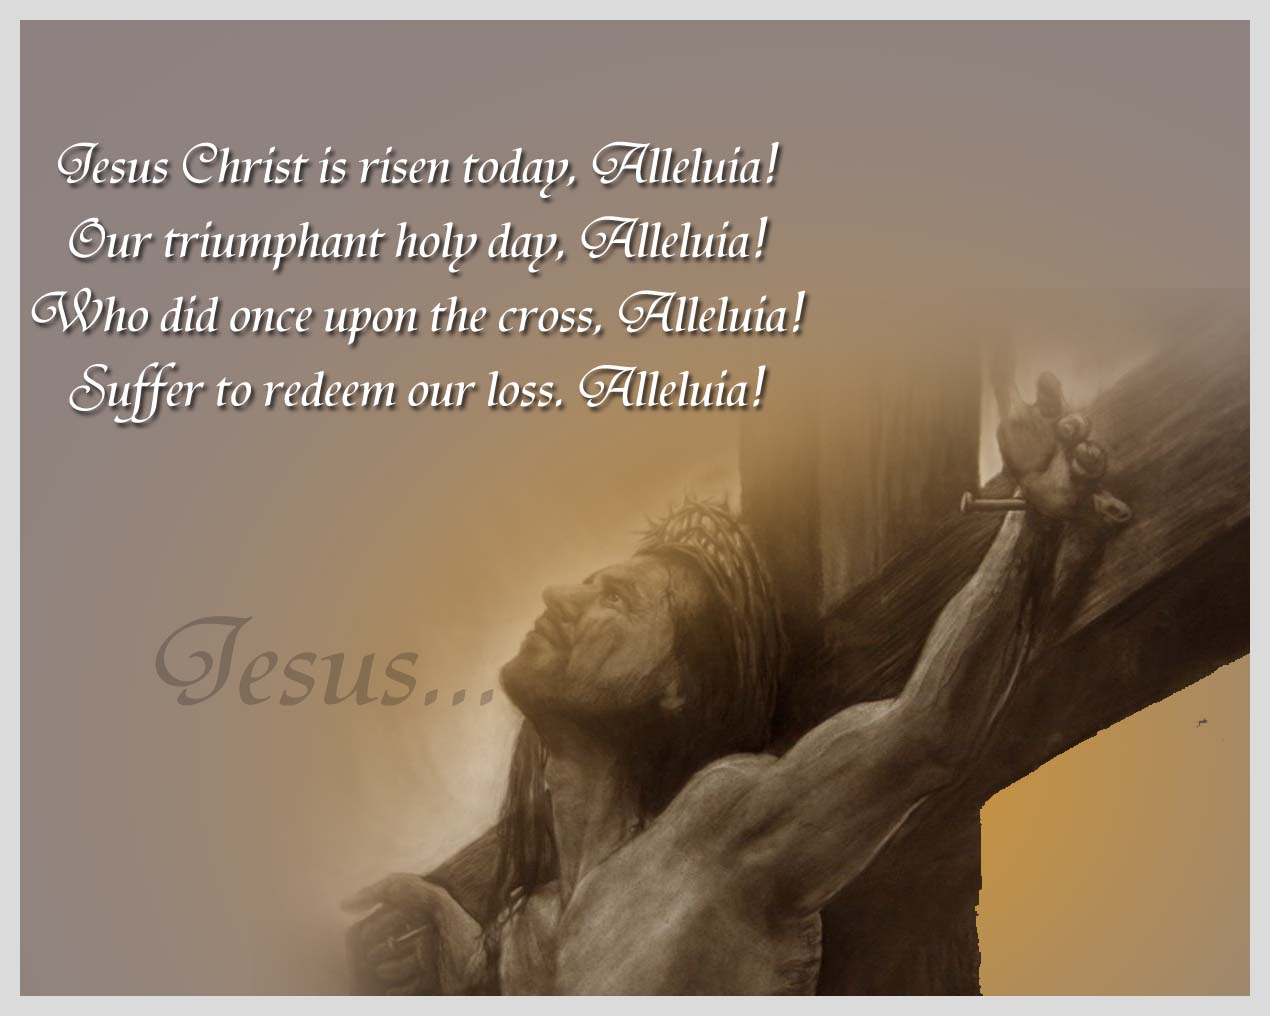 Quotes about Jesus picture (5 quotes)